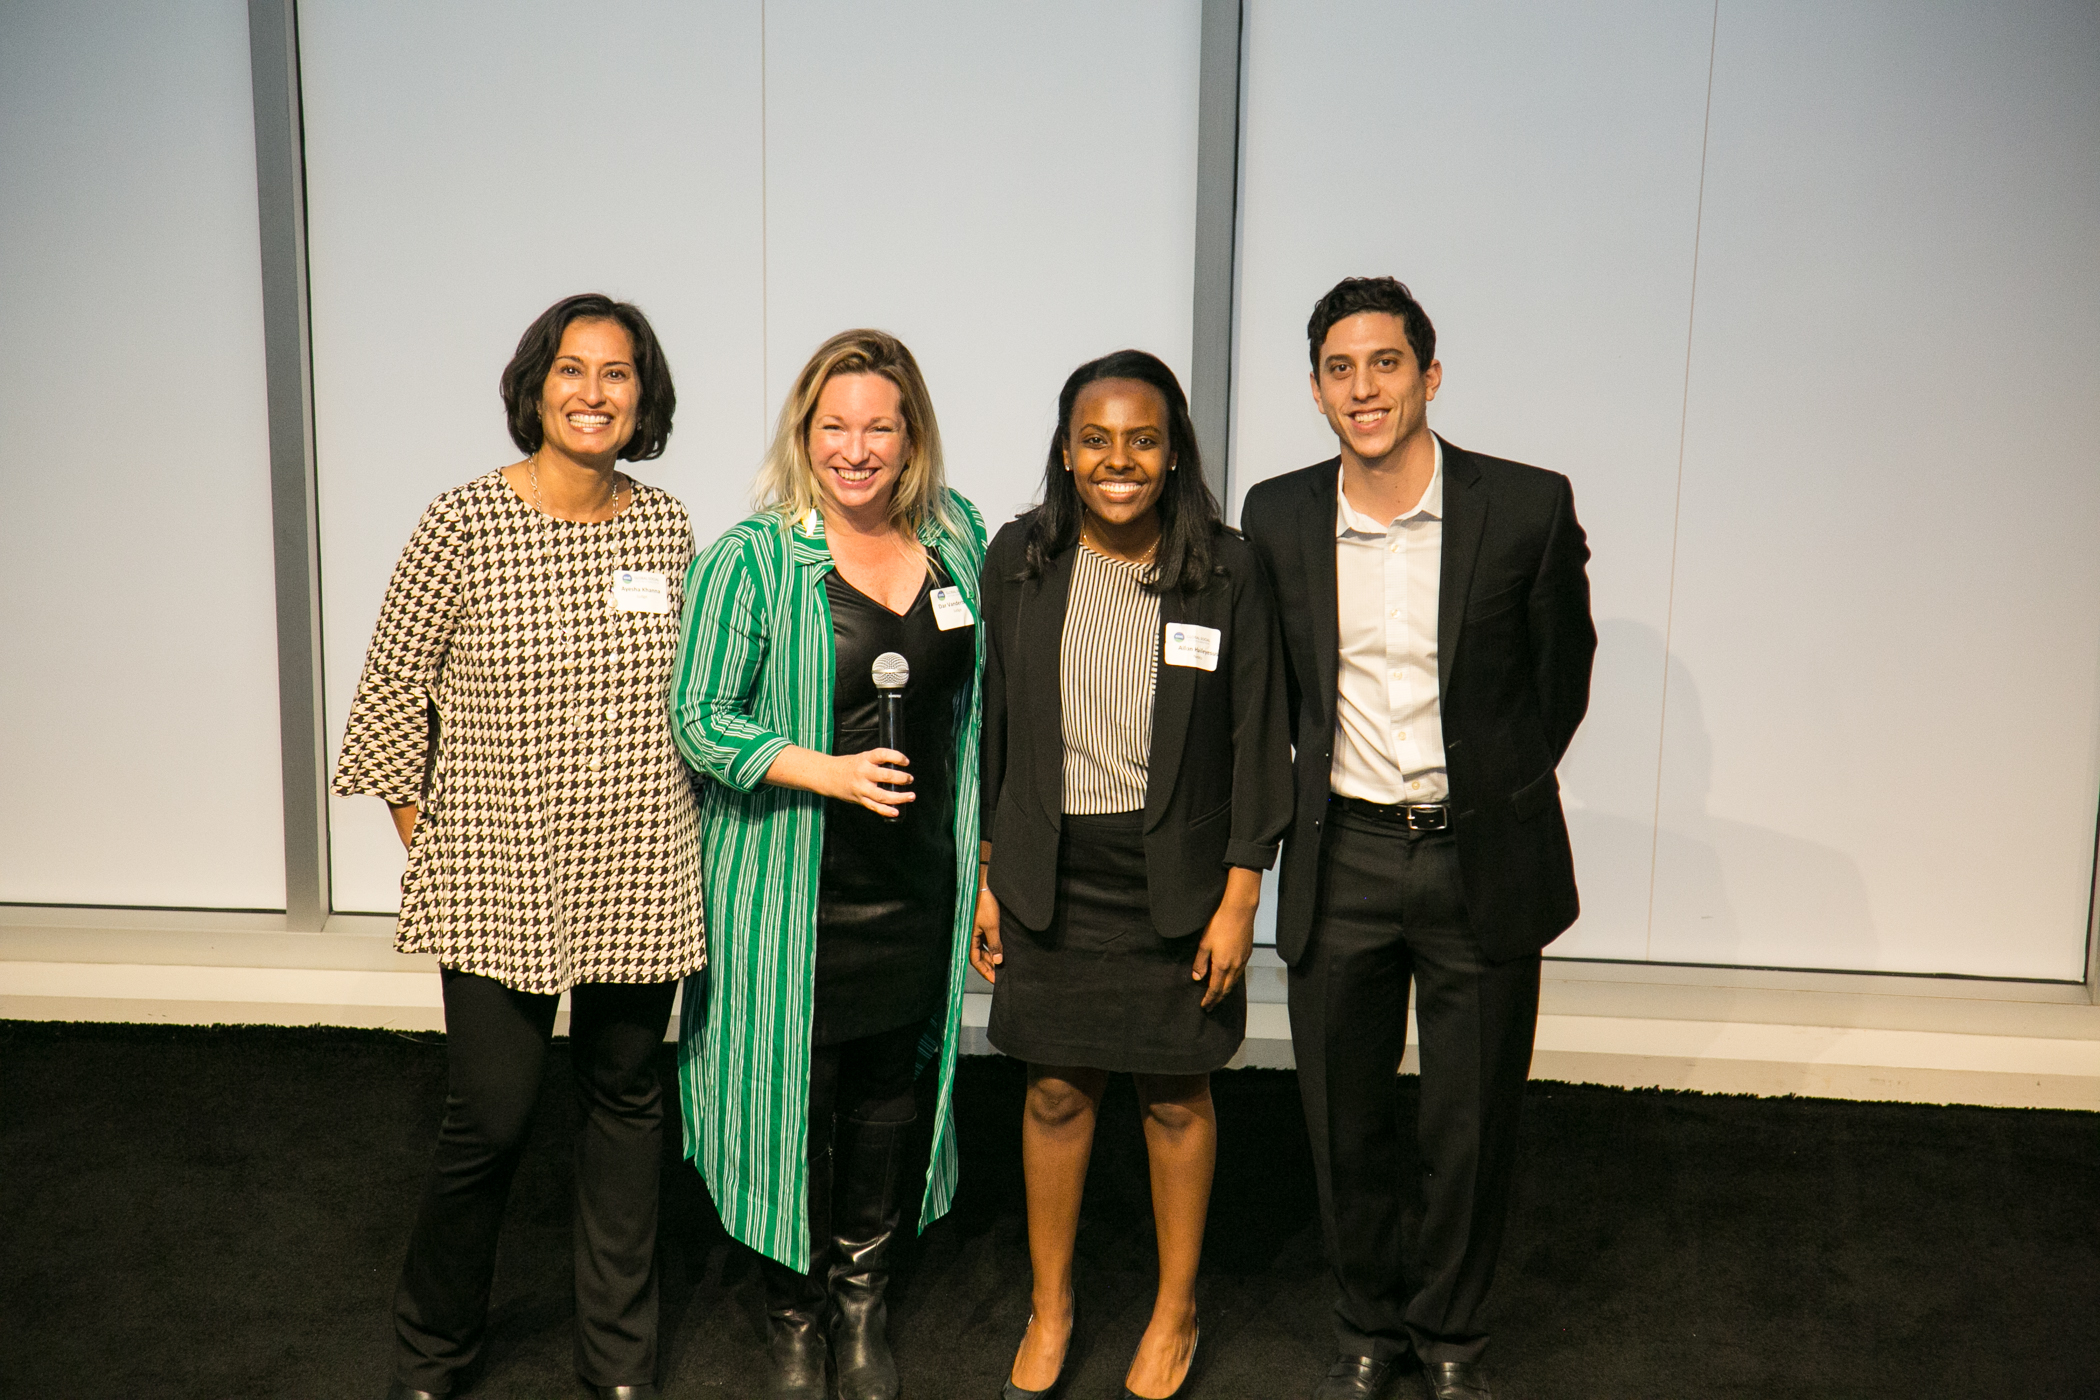 Global Finalist team, NeMo (Johns Hopkins), on stage with judges Ayesha Khanna (Points of Light) and Dar Vanderbeck (CARE)